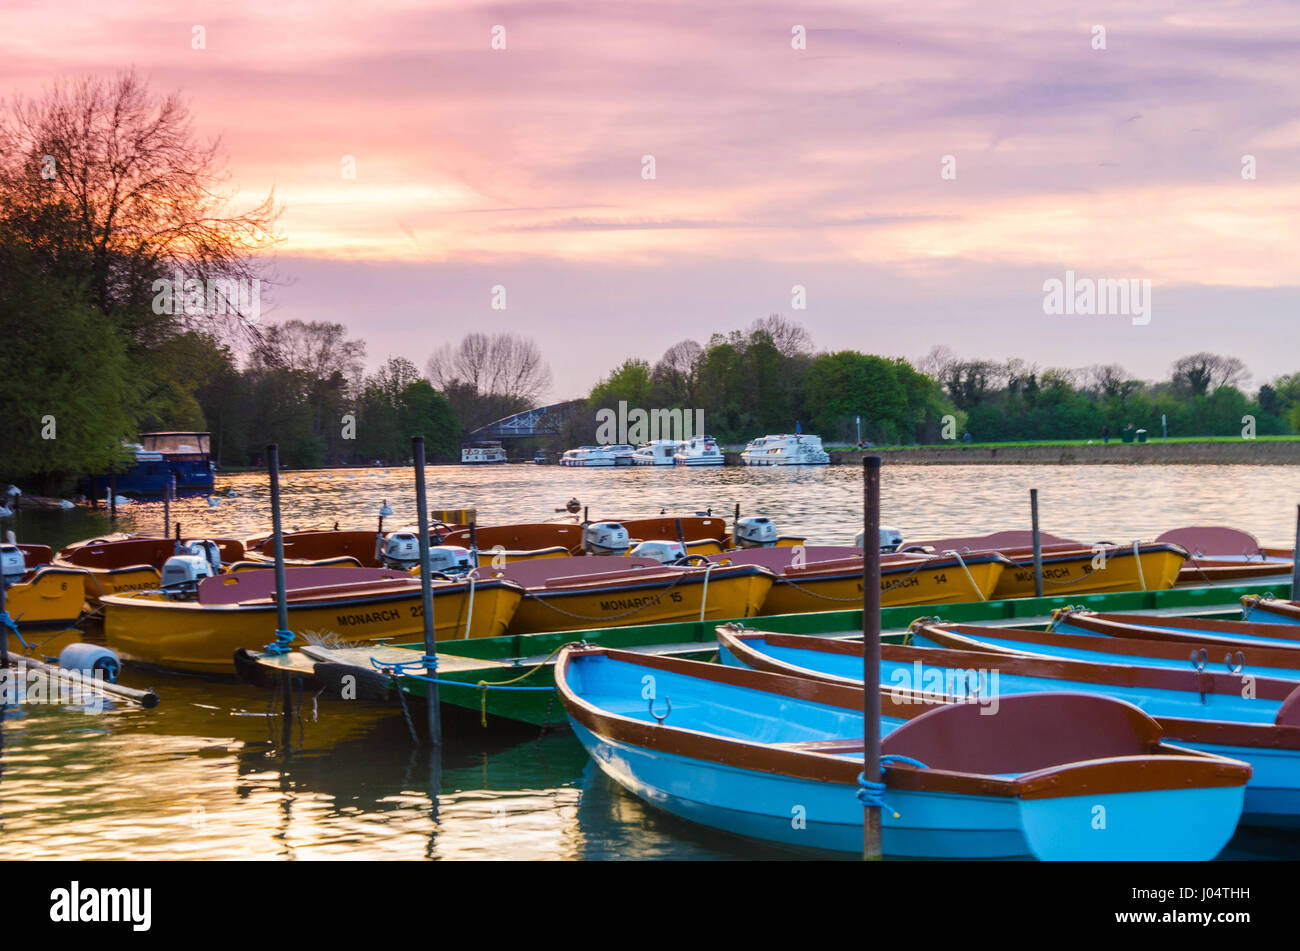 looking-down-the-river-thames-at-hire-boats-moored-to-the-side-of-J04THH.jpg